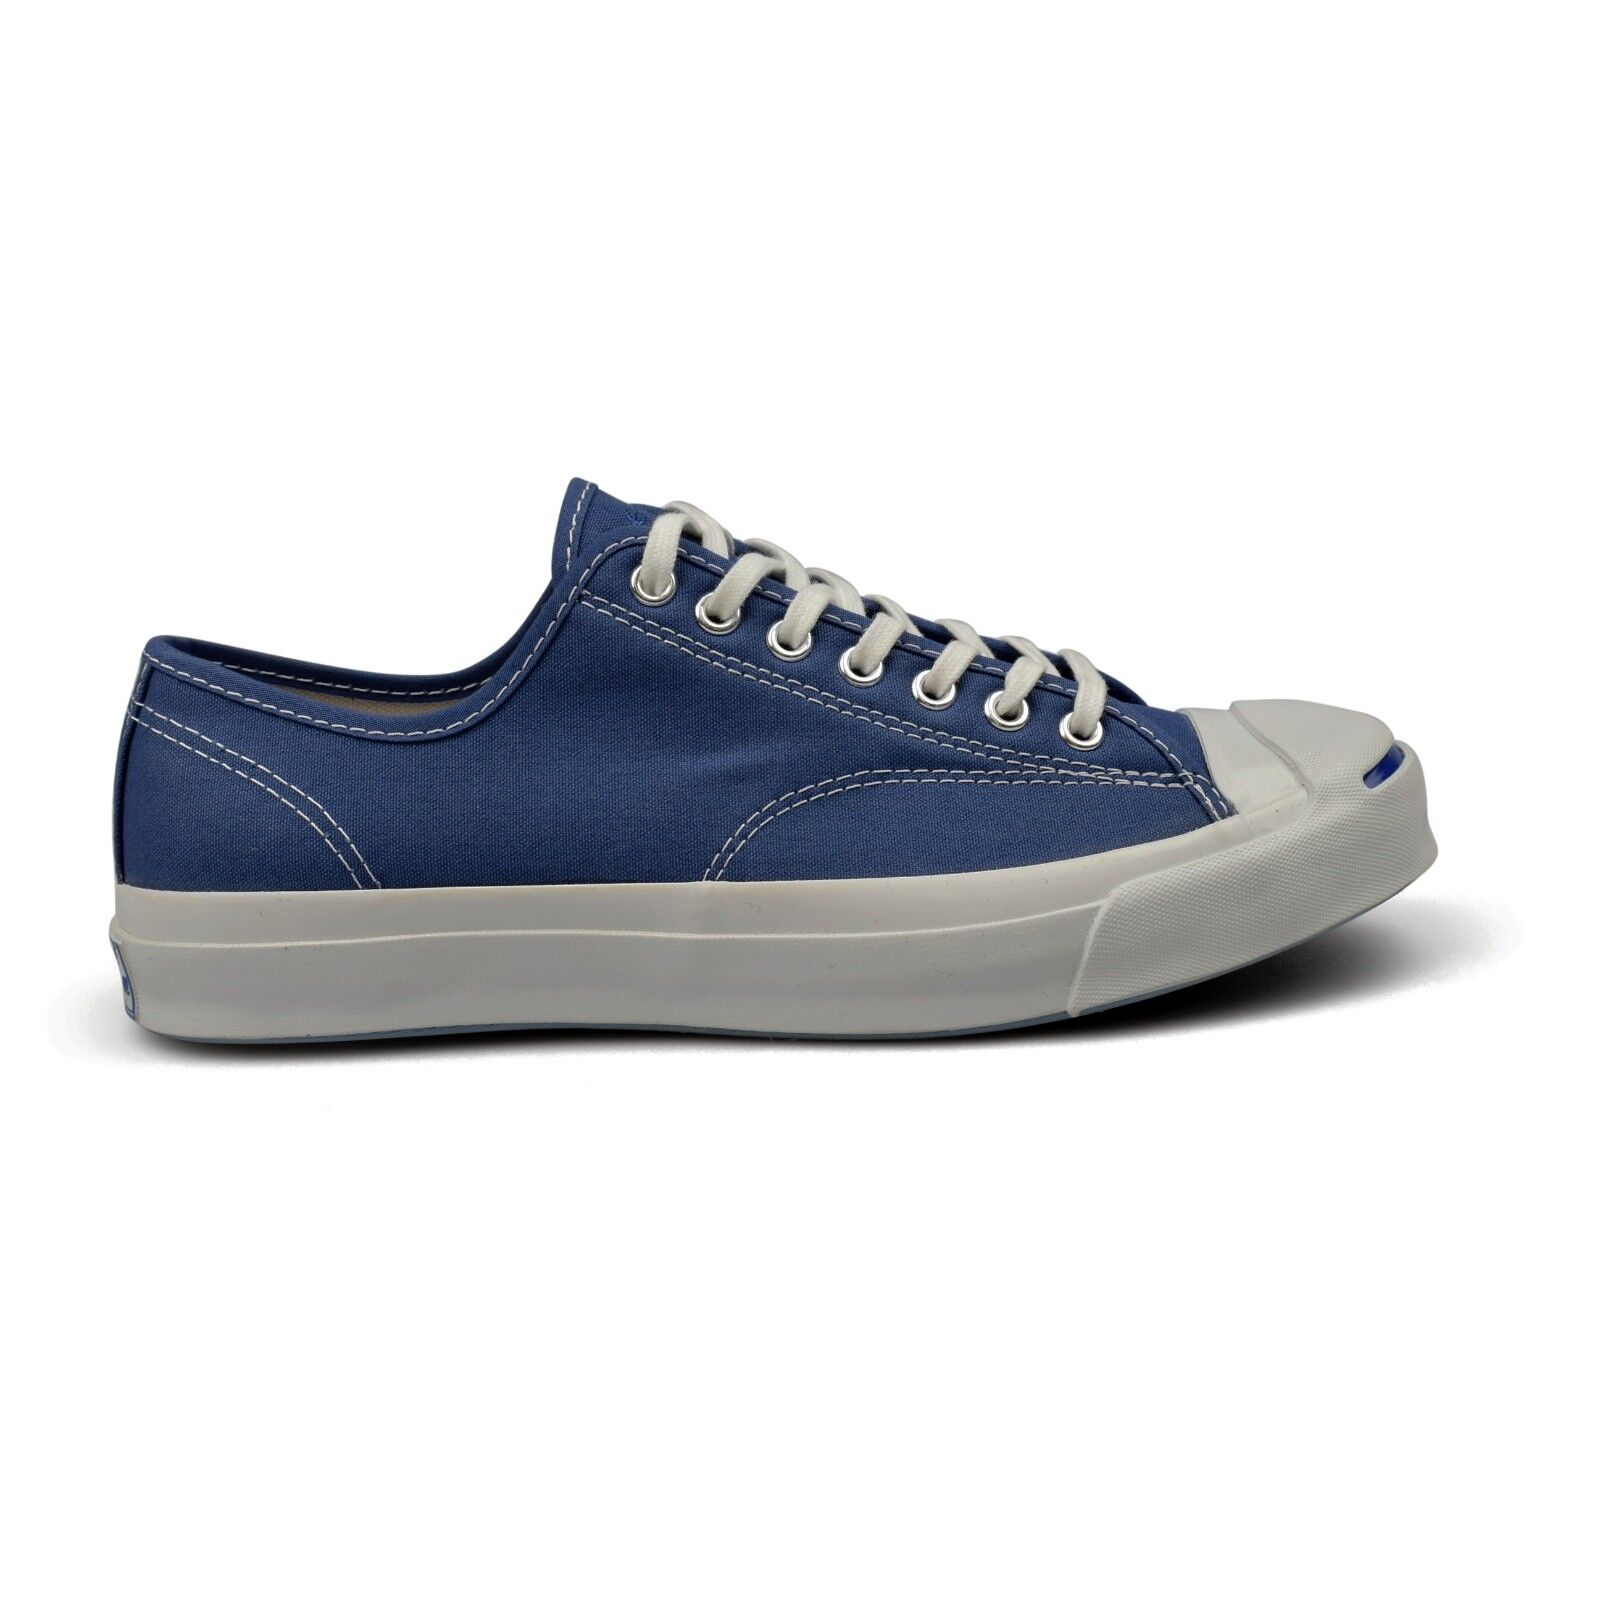 Converse Jack Purcell Signature True Navy Duck 147563C Canvas Hombre Trainers New 147563C Duck 8e4ab5